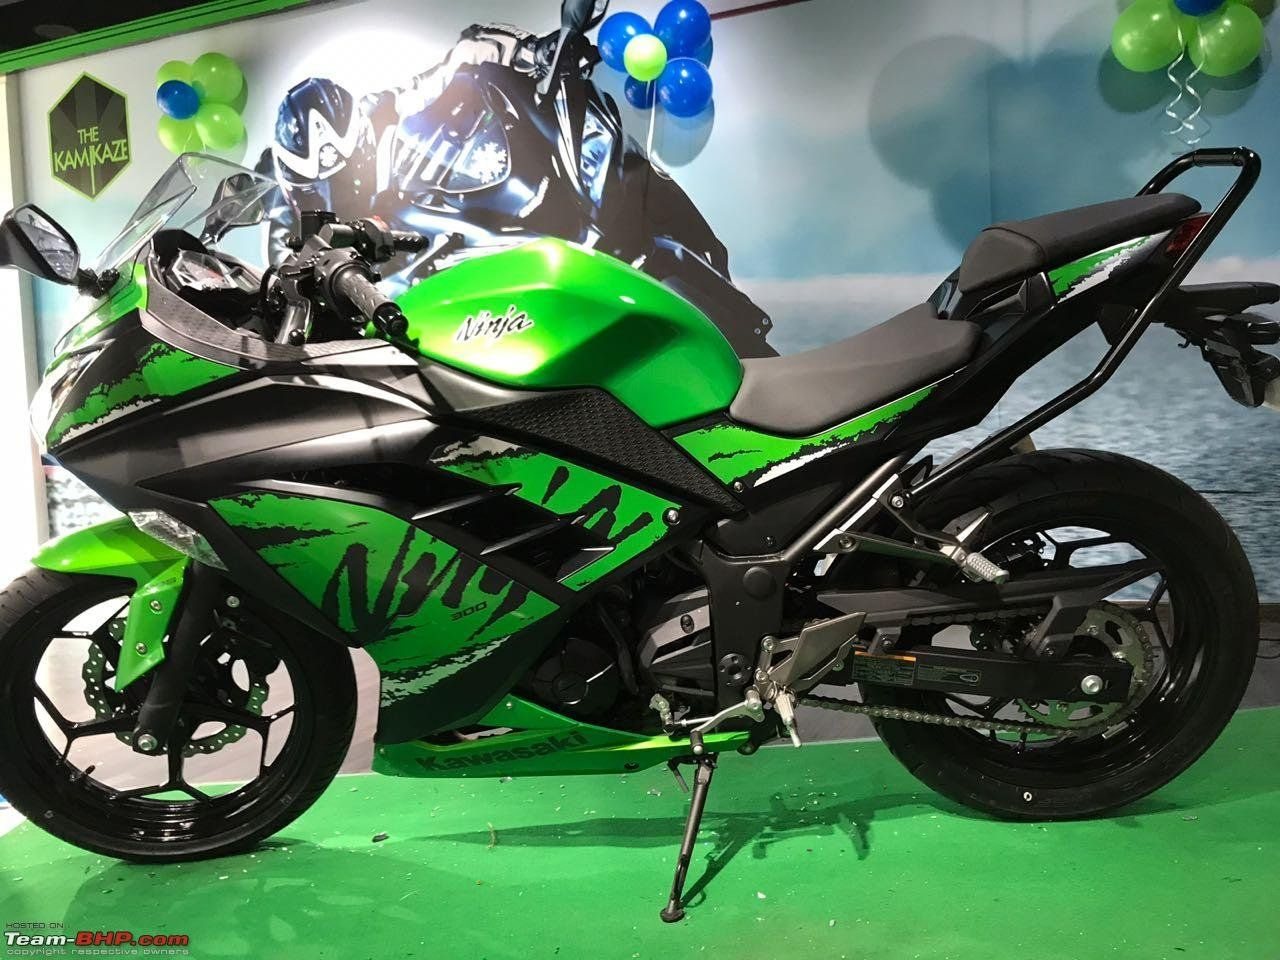 Kawasaki Ninja 300 Abs 2019 Performance From A Close Look The